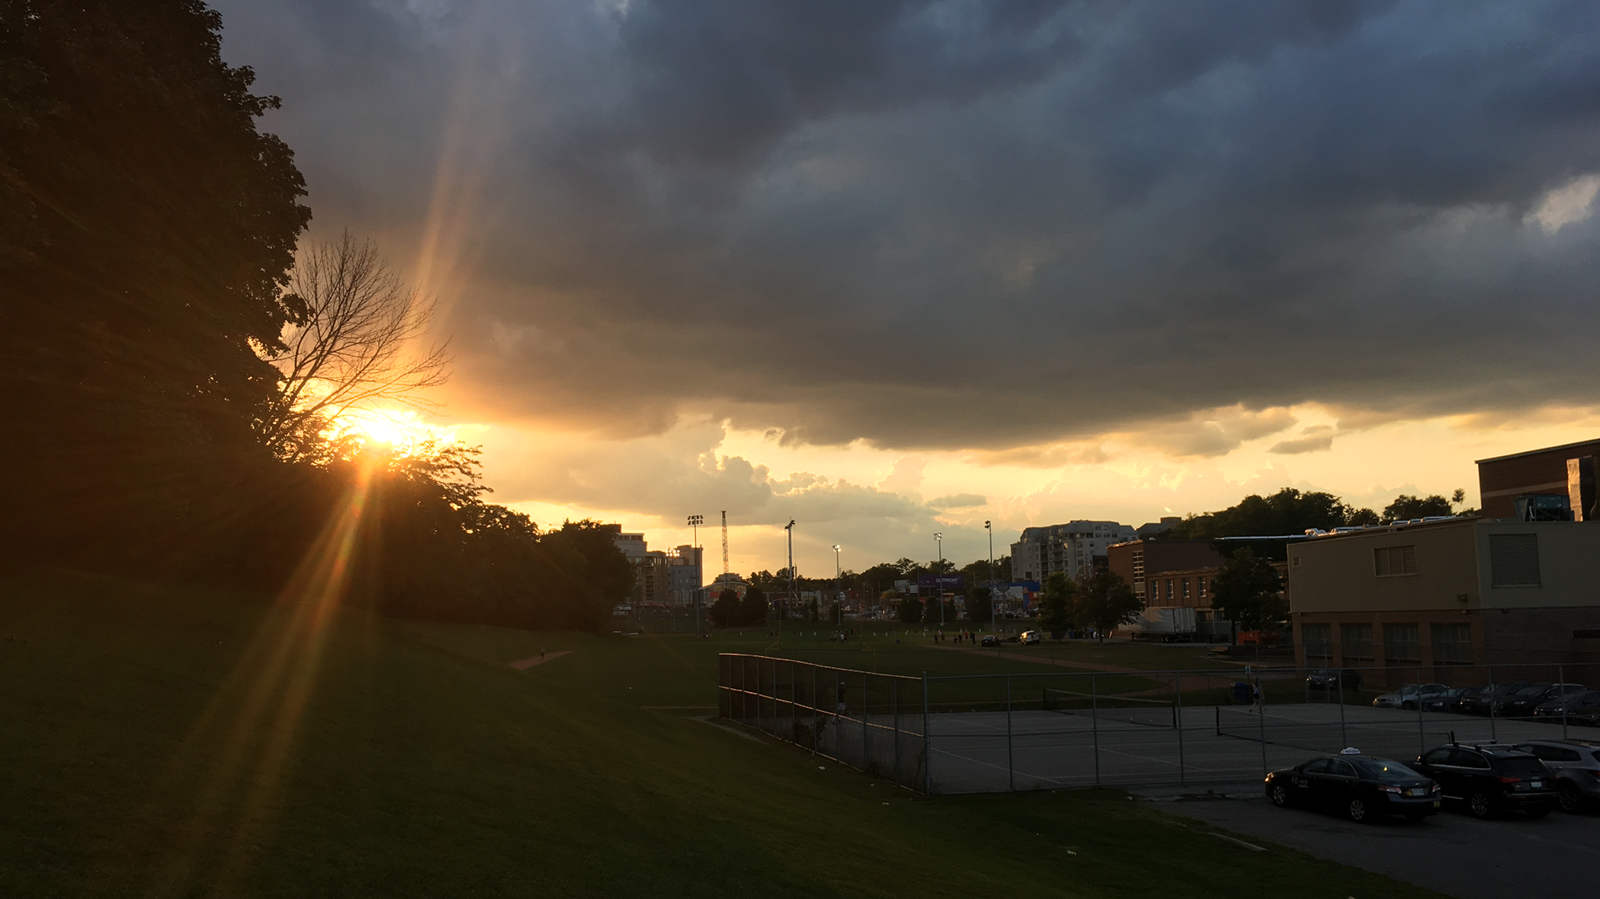 Sunset at Talbot Park.